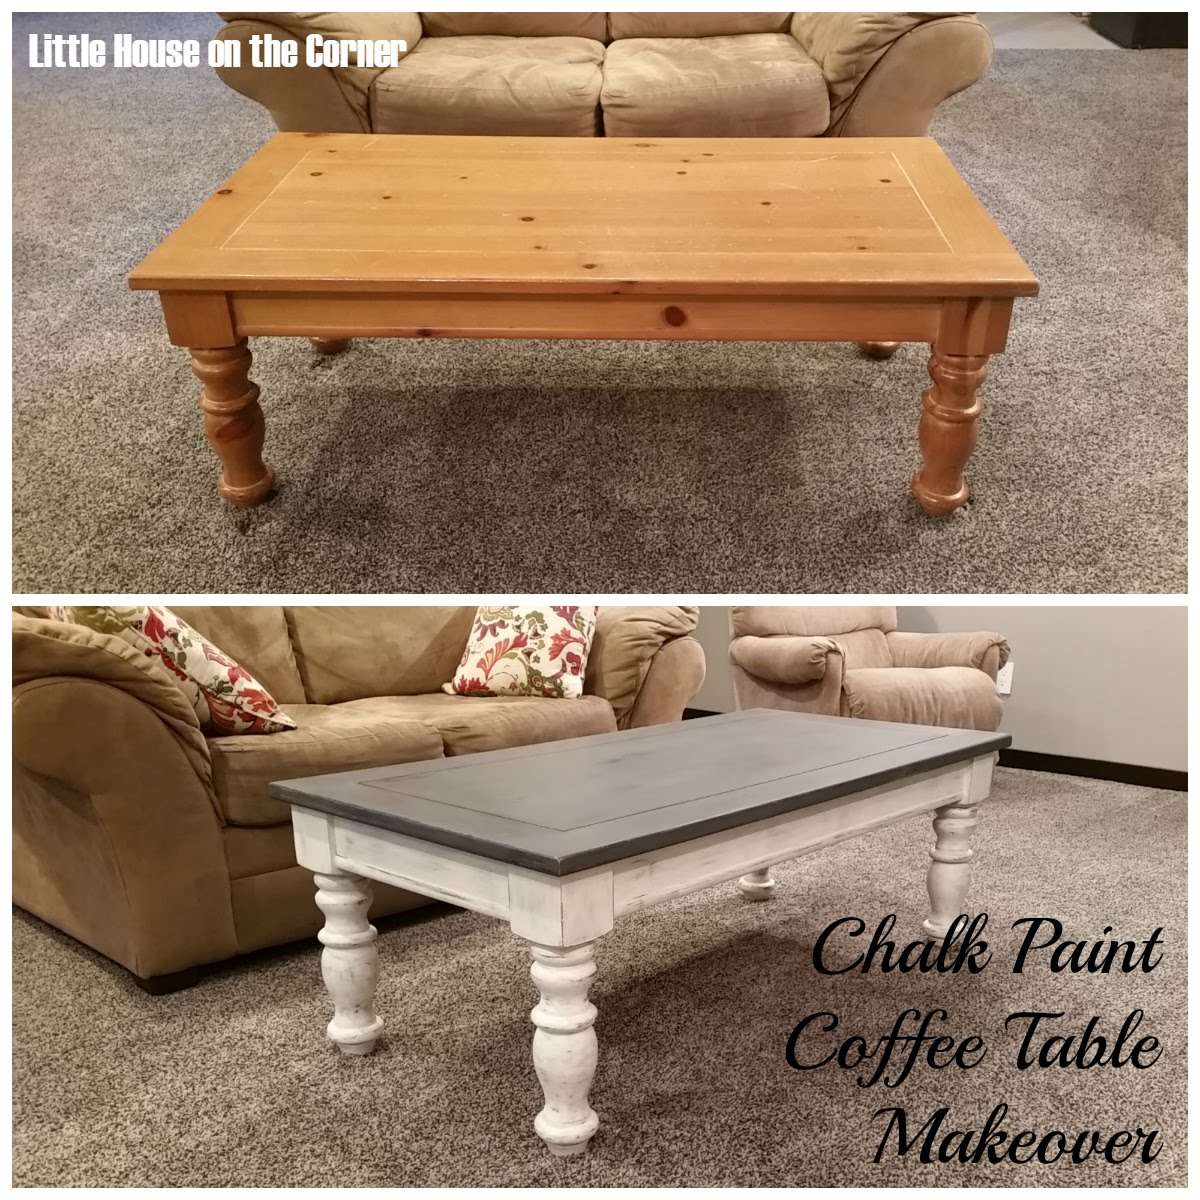 Chalk Paint Table Ideas: Little House On The Corner: Chalk Paint Coffee Table Makeover